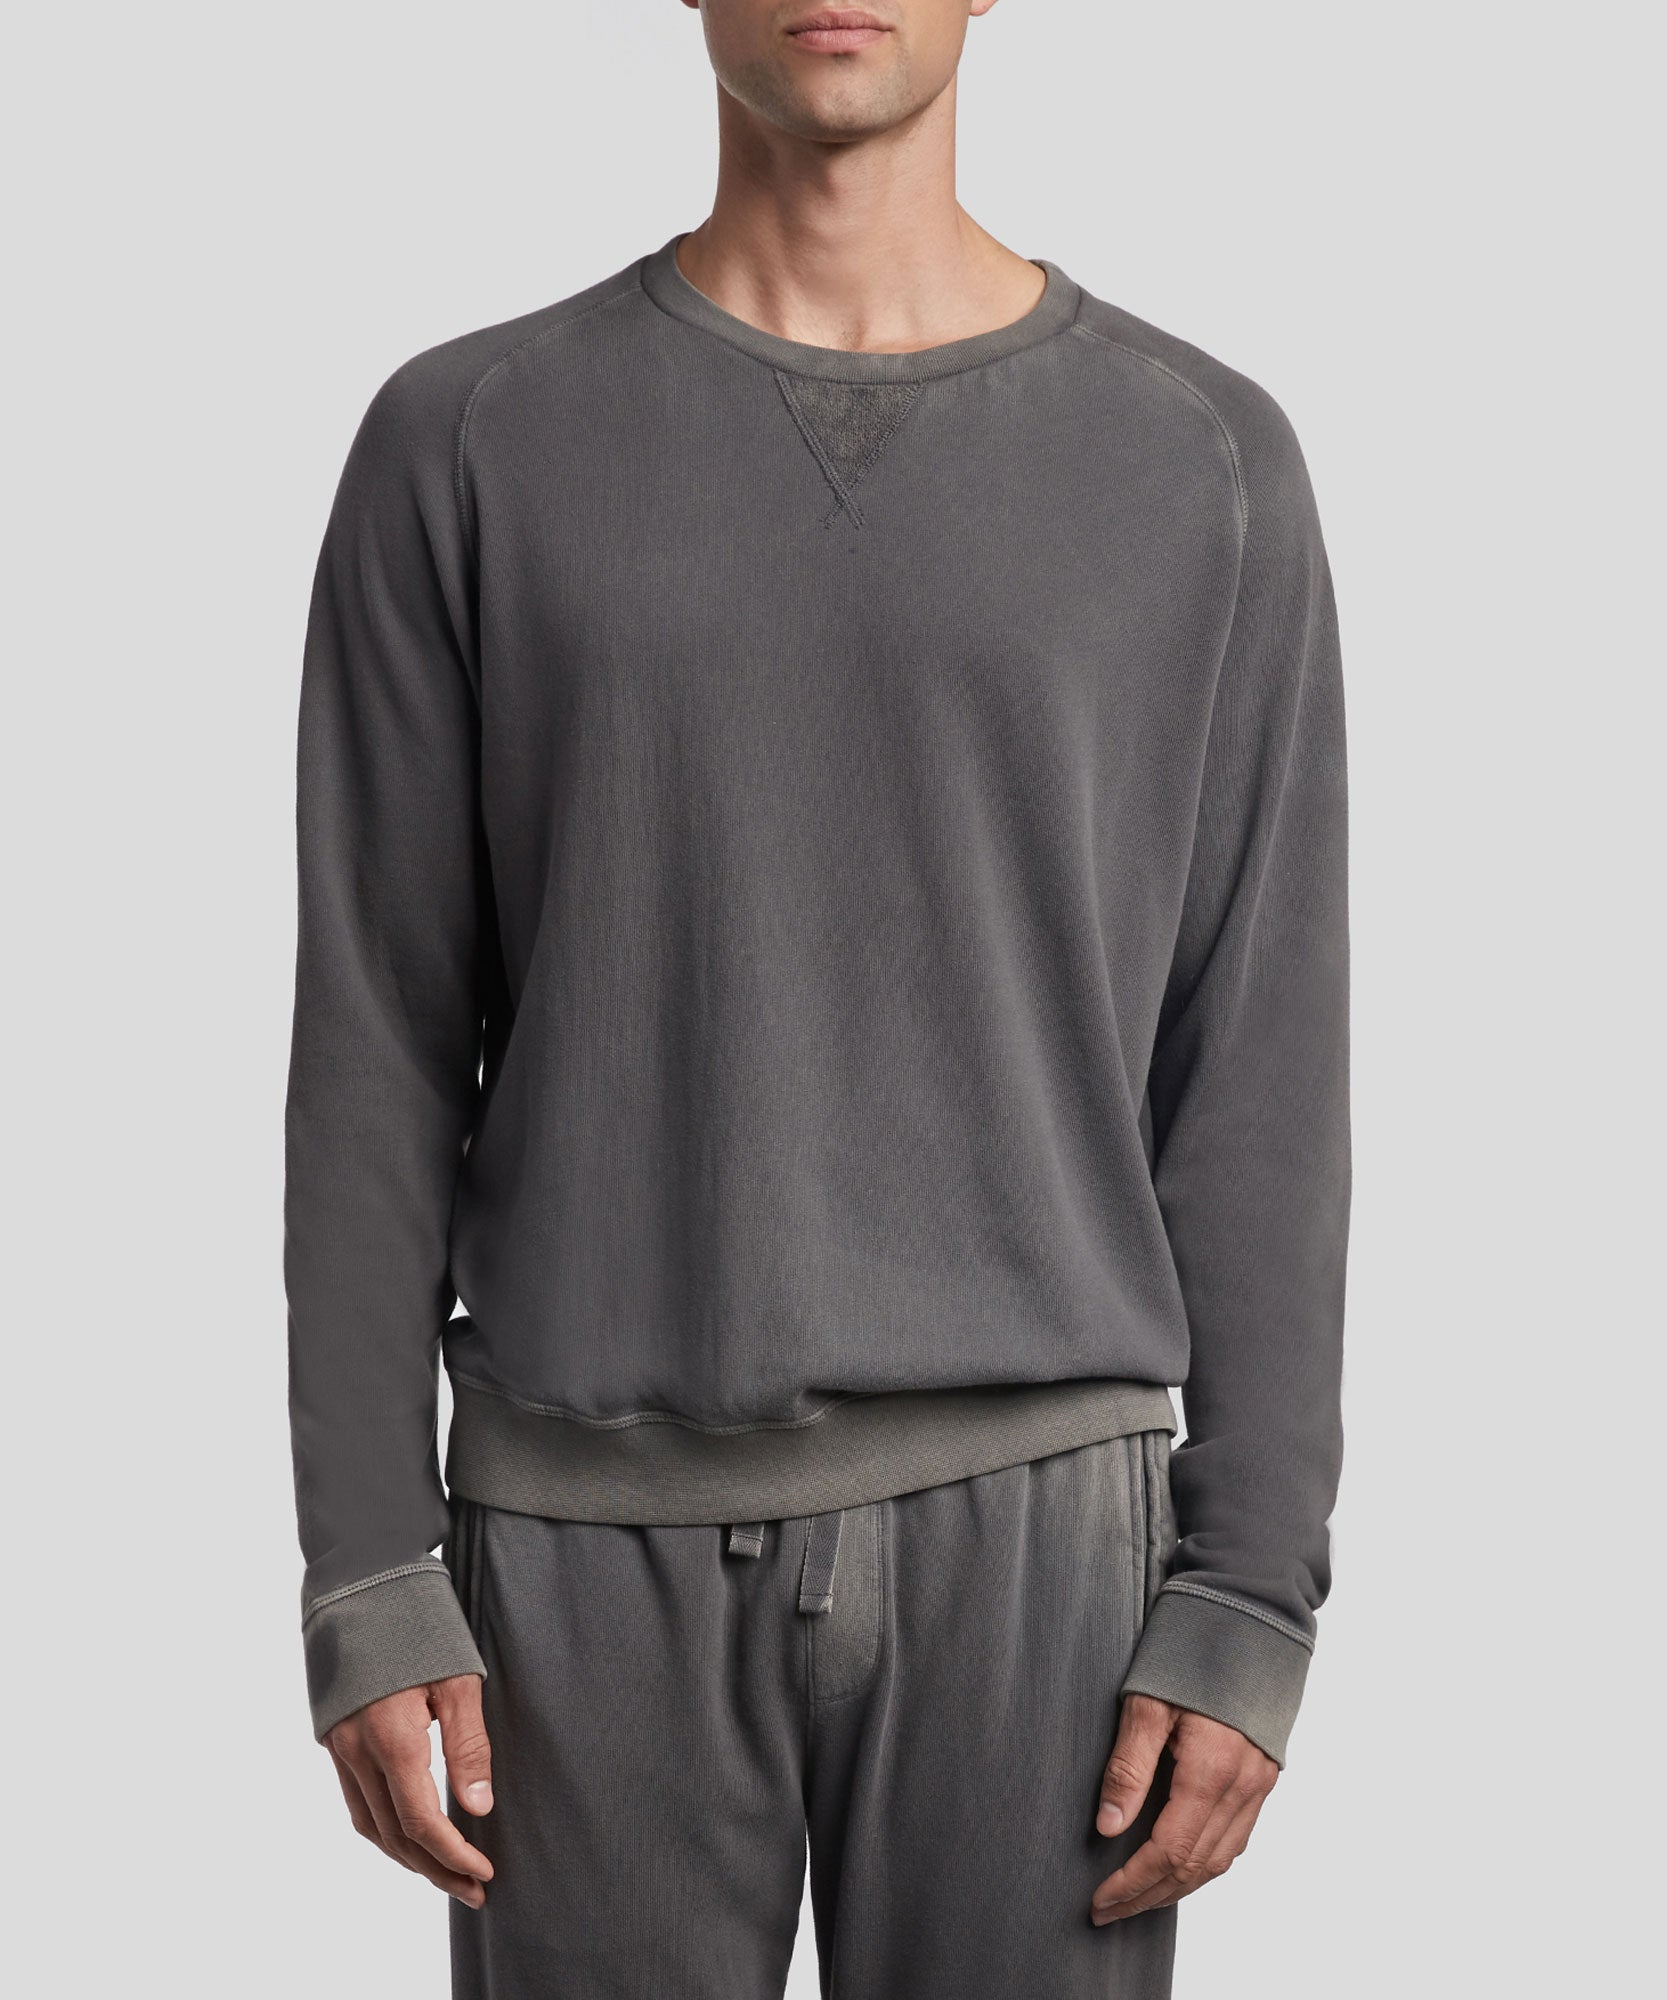 Asphalt Grey French Terry Sweatshirt - Men's Luxe Loungewear by ATM Anthony Thomas Melillo